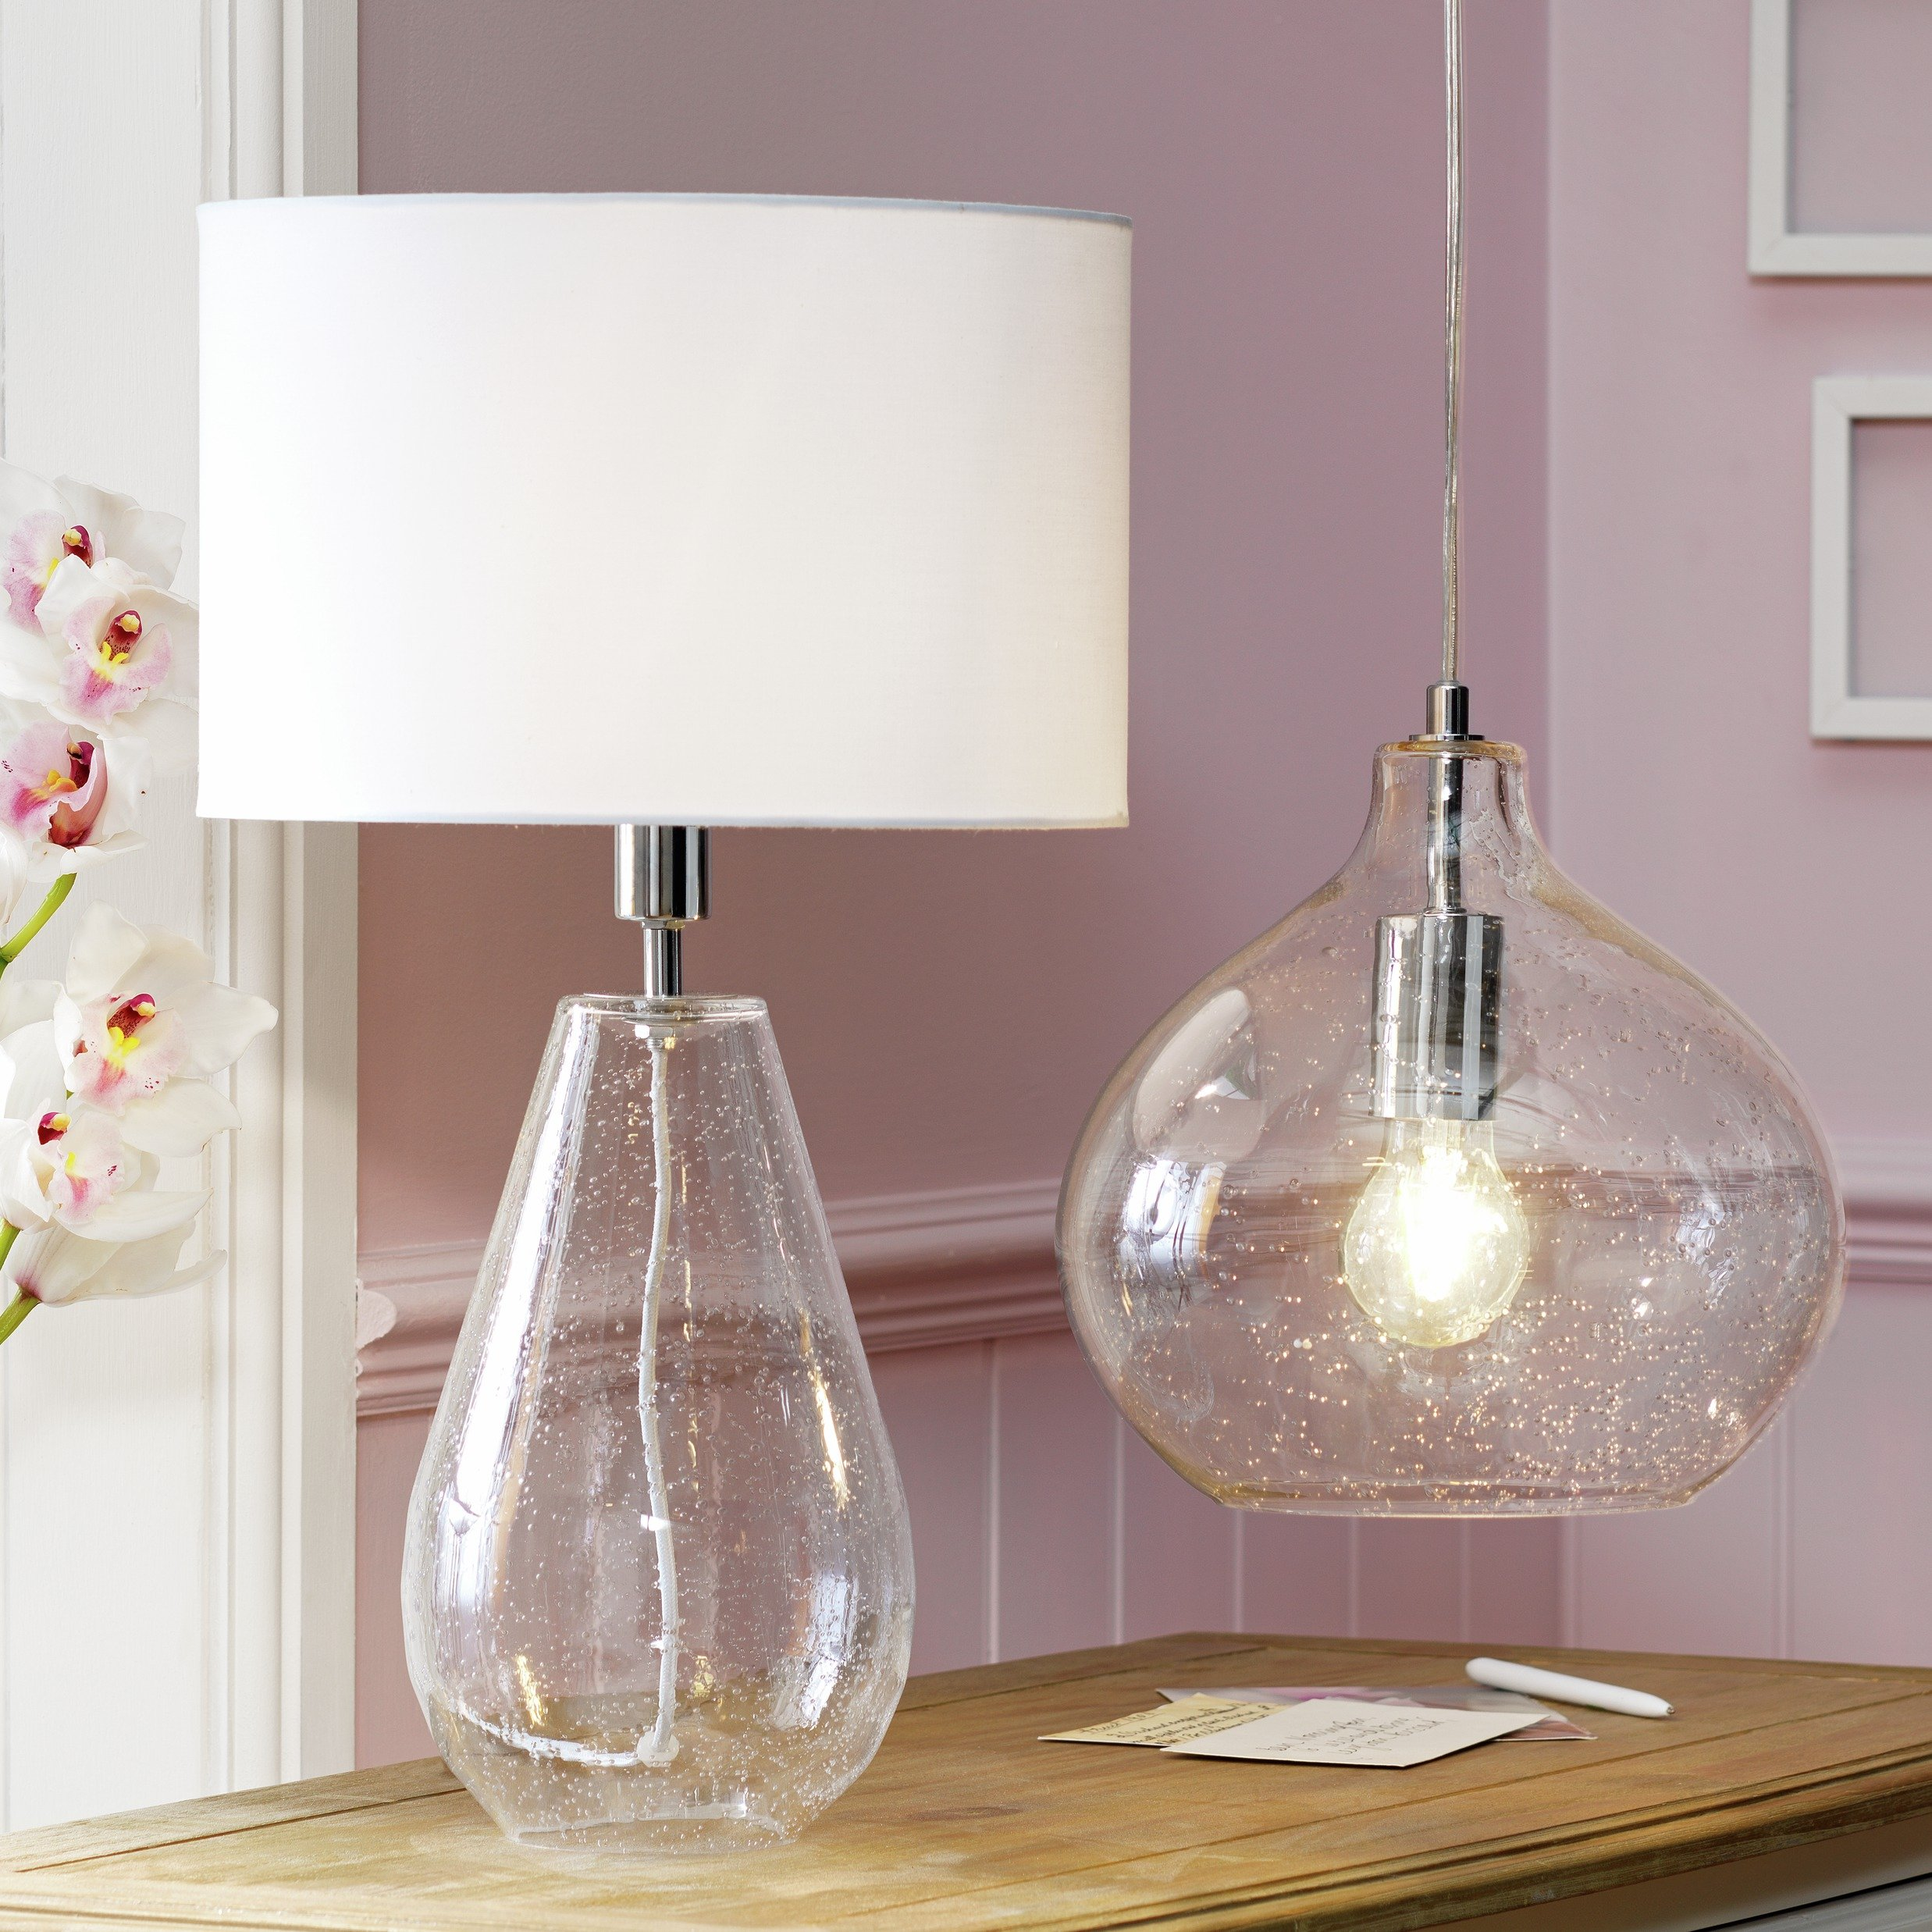 Buy Heart of House Arabelle Bubble Glass Pendant Ceiling Light at